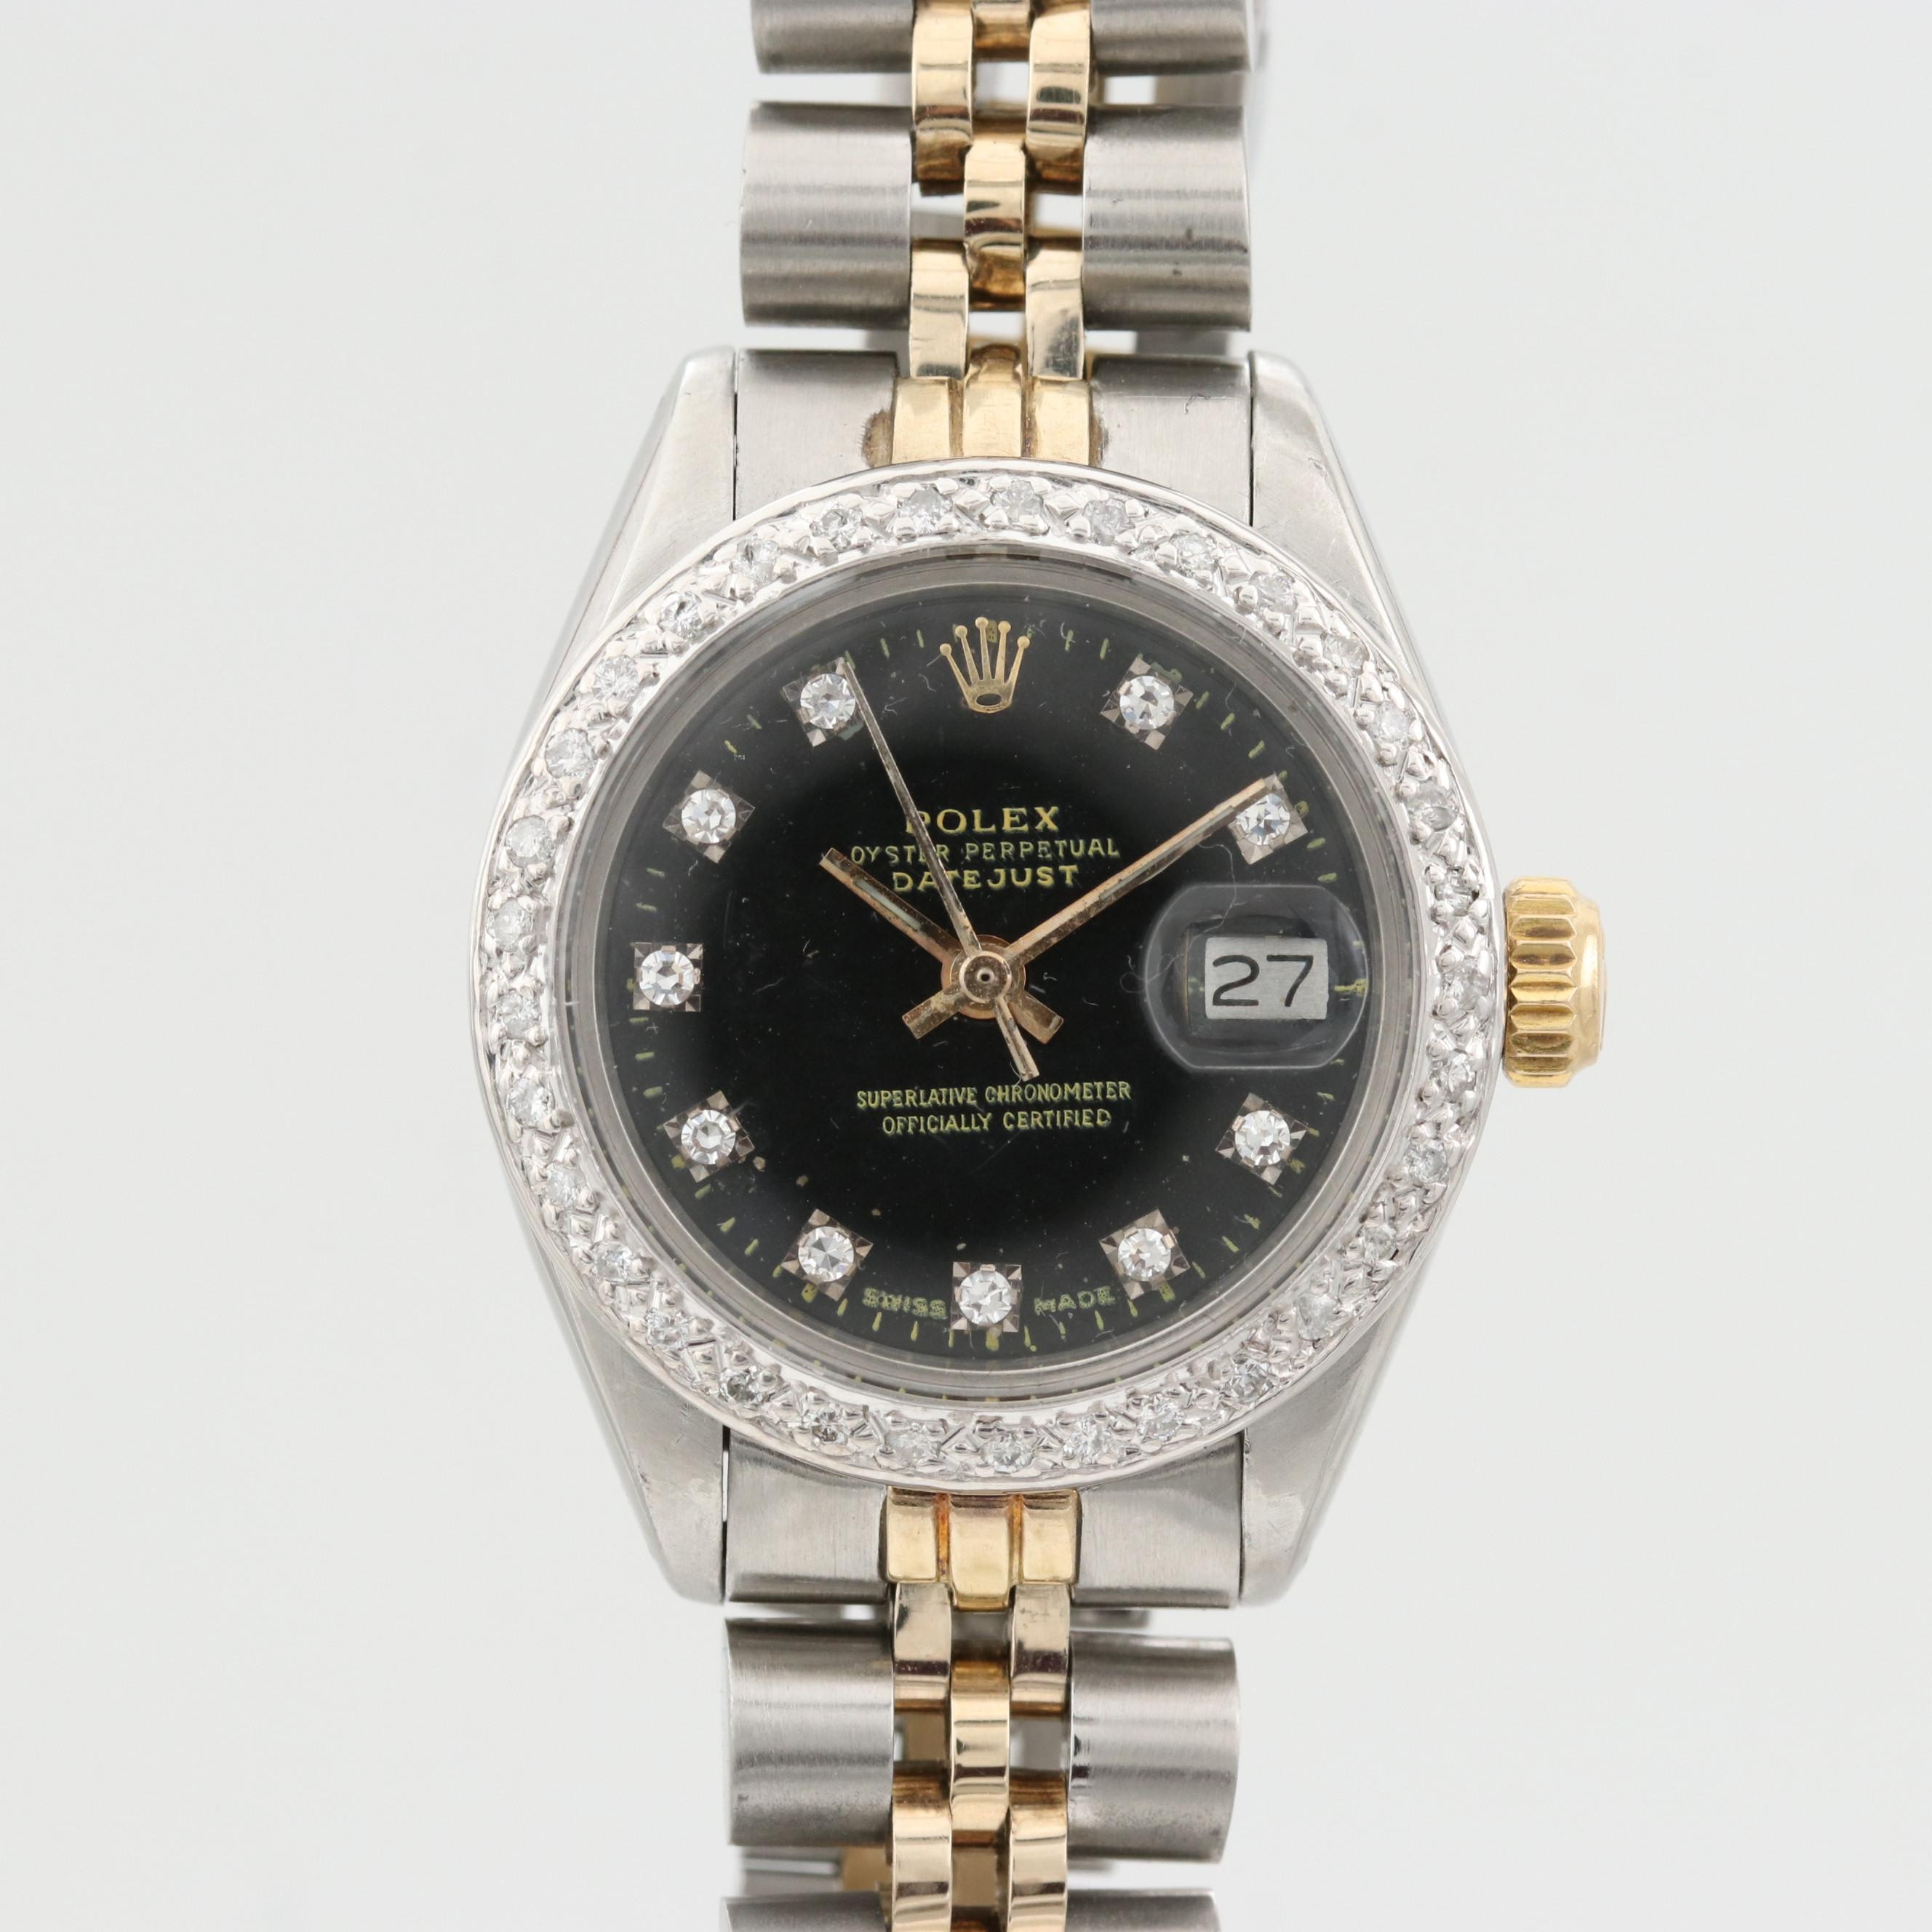 Rolex Datejust Wristwatch With Aftermarket Diamond Dial and Bezel, 1978